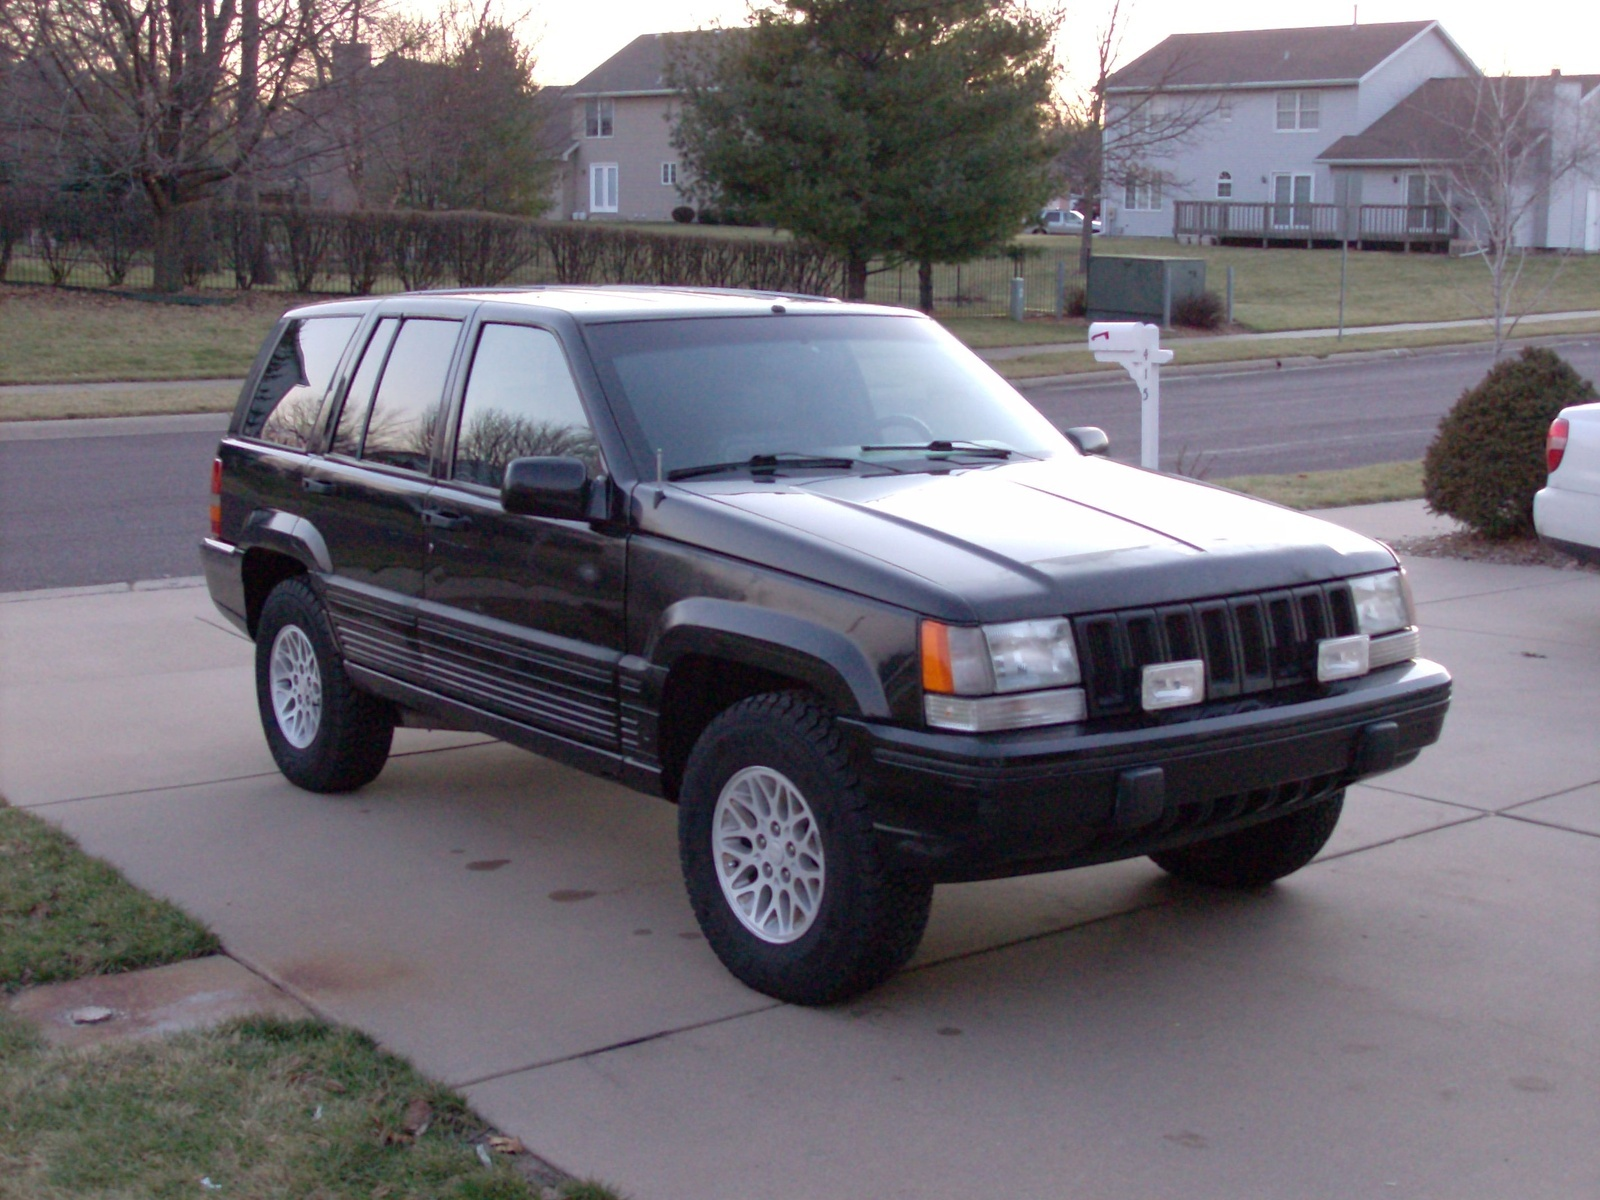 Picture of 1993 jeep grand cherokee limited 4wd exterior gallery_worthy